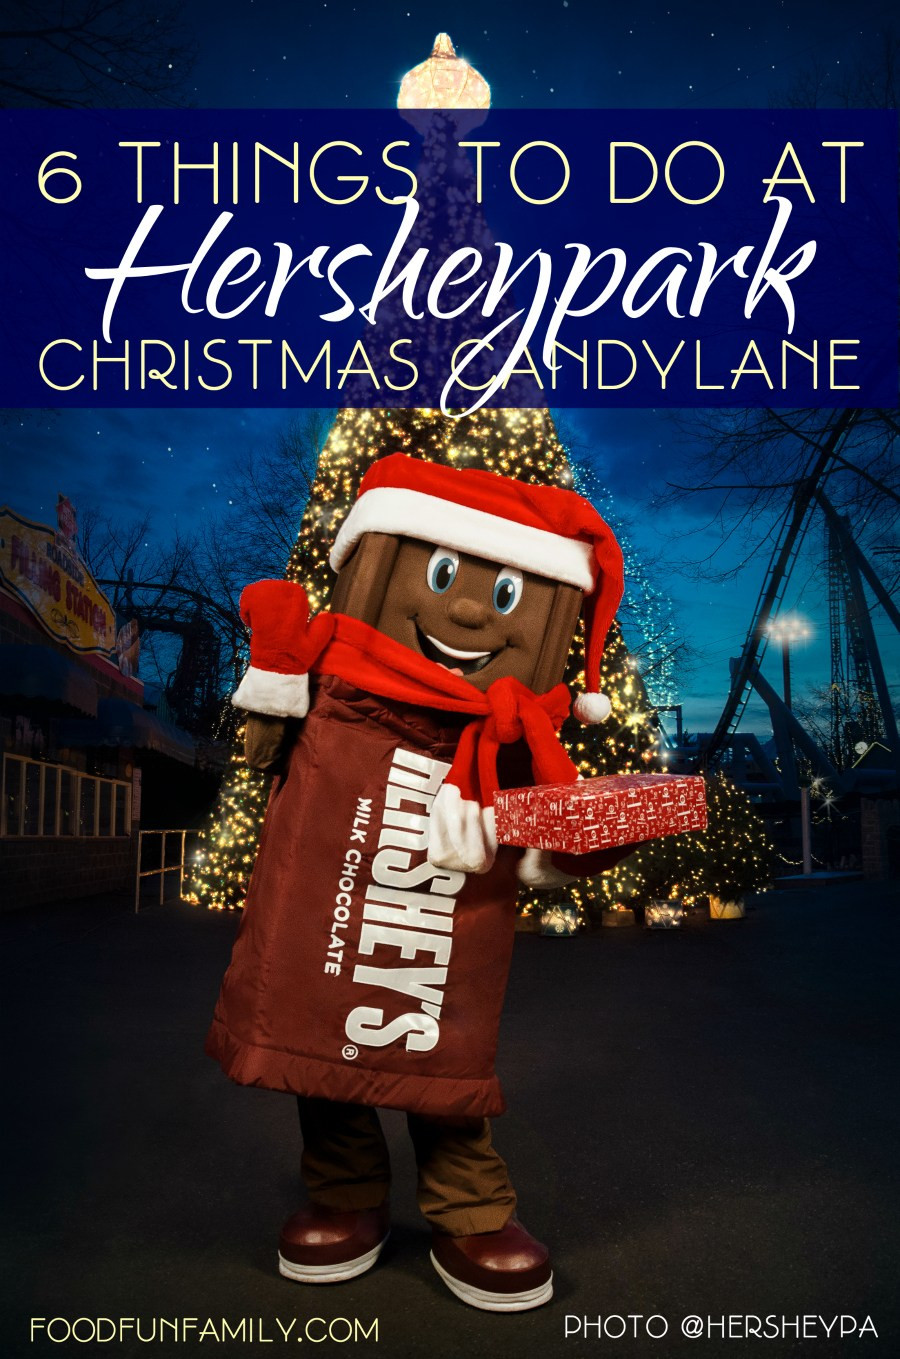 Christmas Candy Lane Hours  6 Things to Do at Hersheypark Christmas Candylane